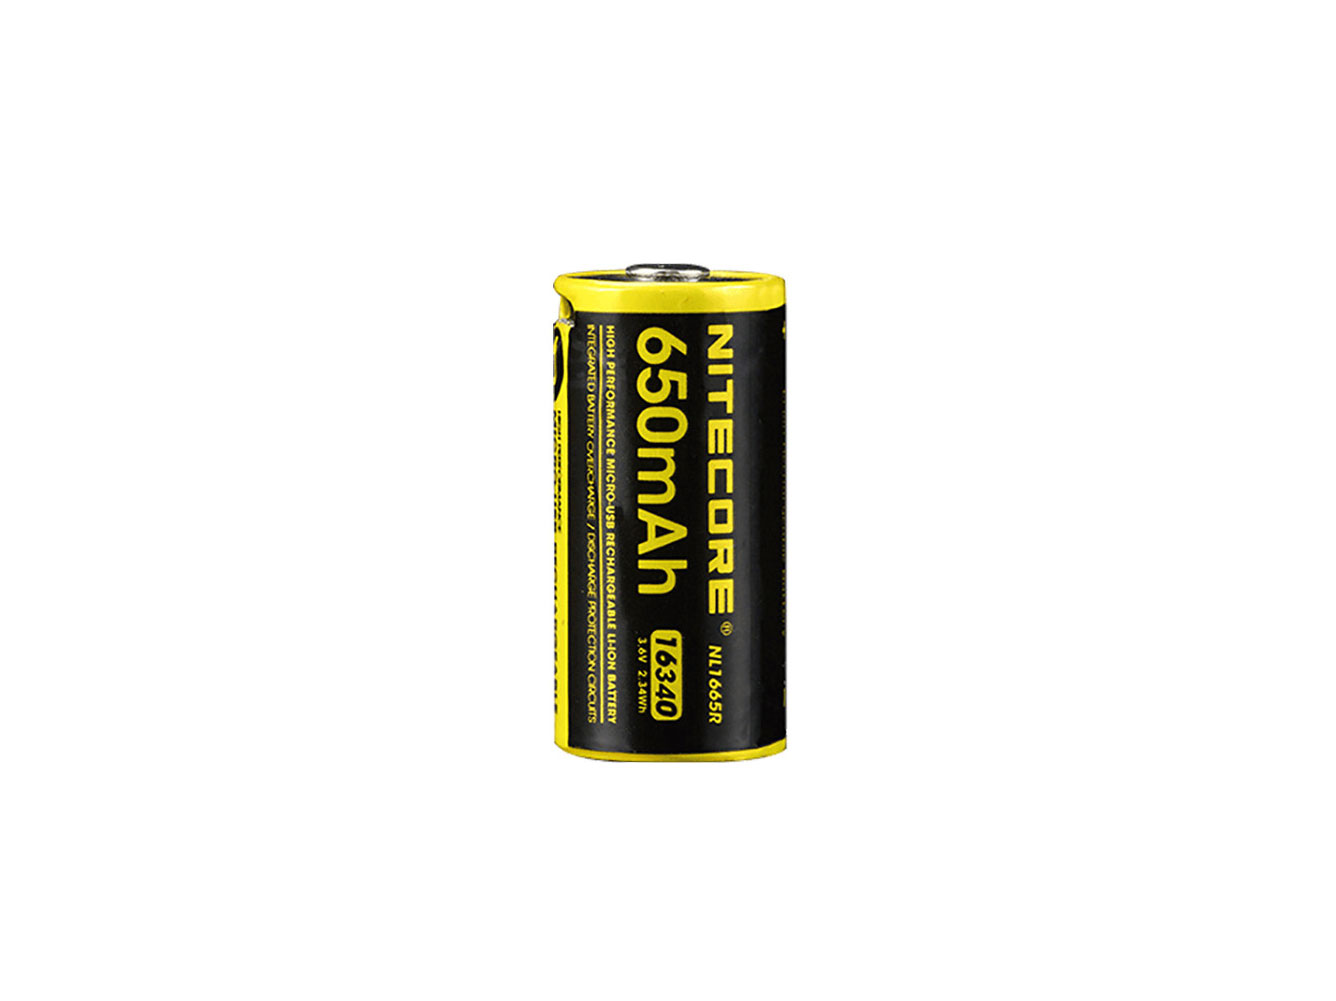 Nitecore NL1665R 16340 Battery - 650 mAh